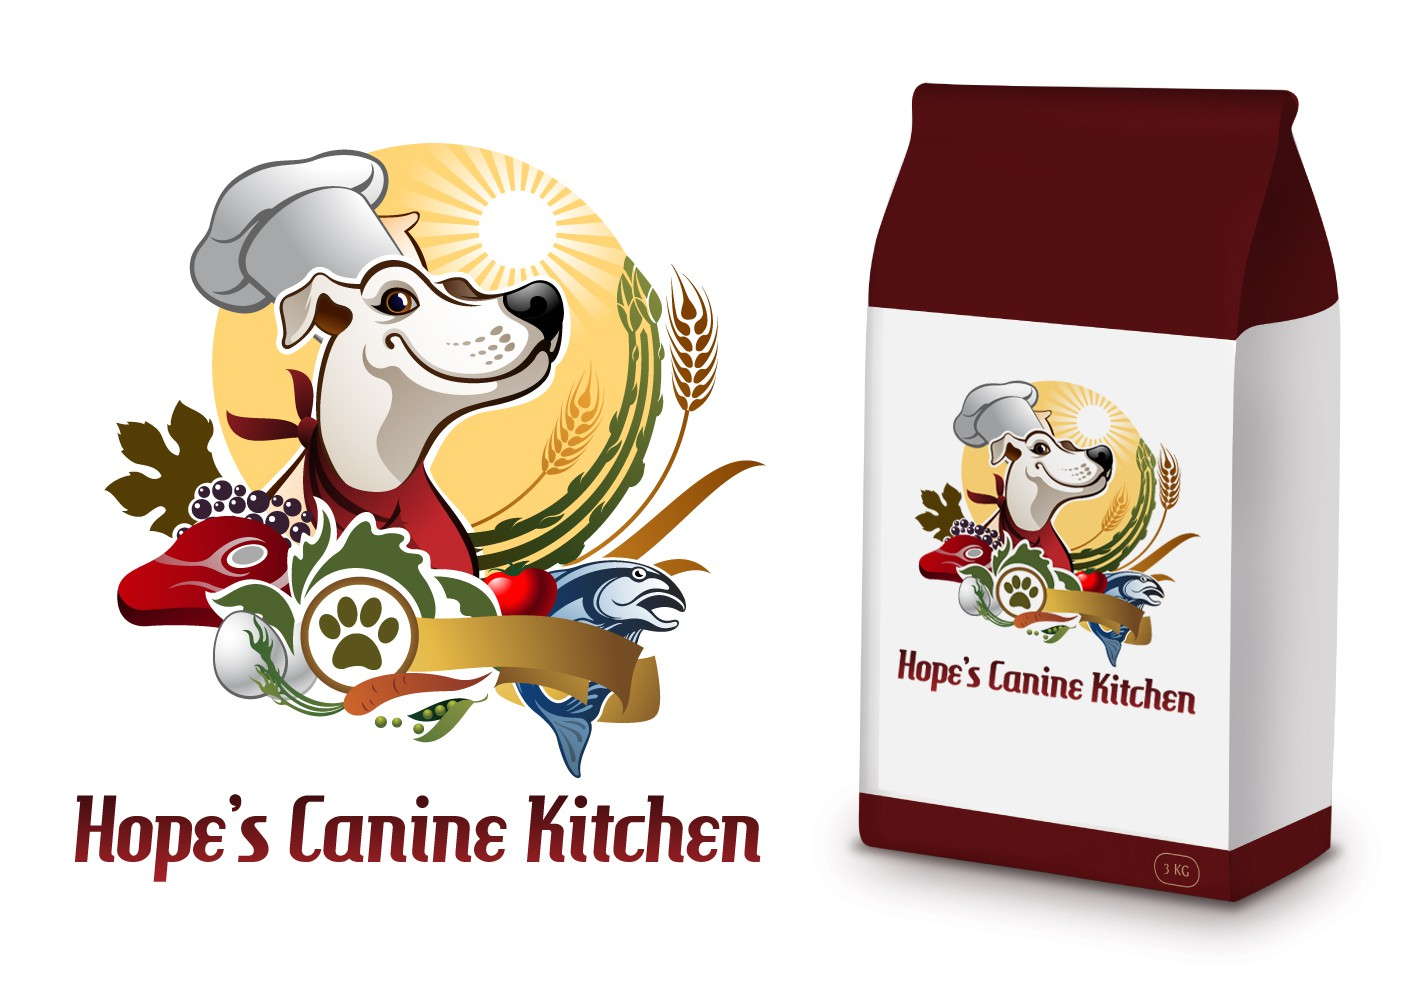 New logo wanted for Hope's Canine Kitchen